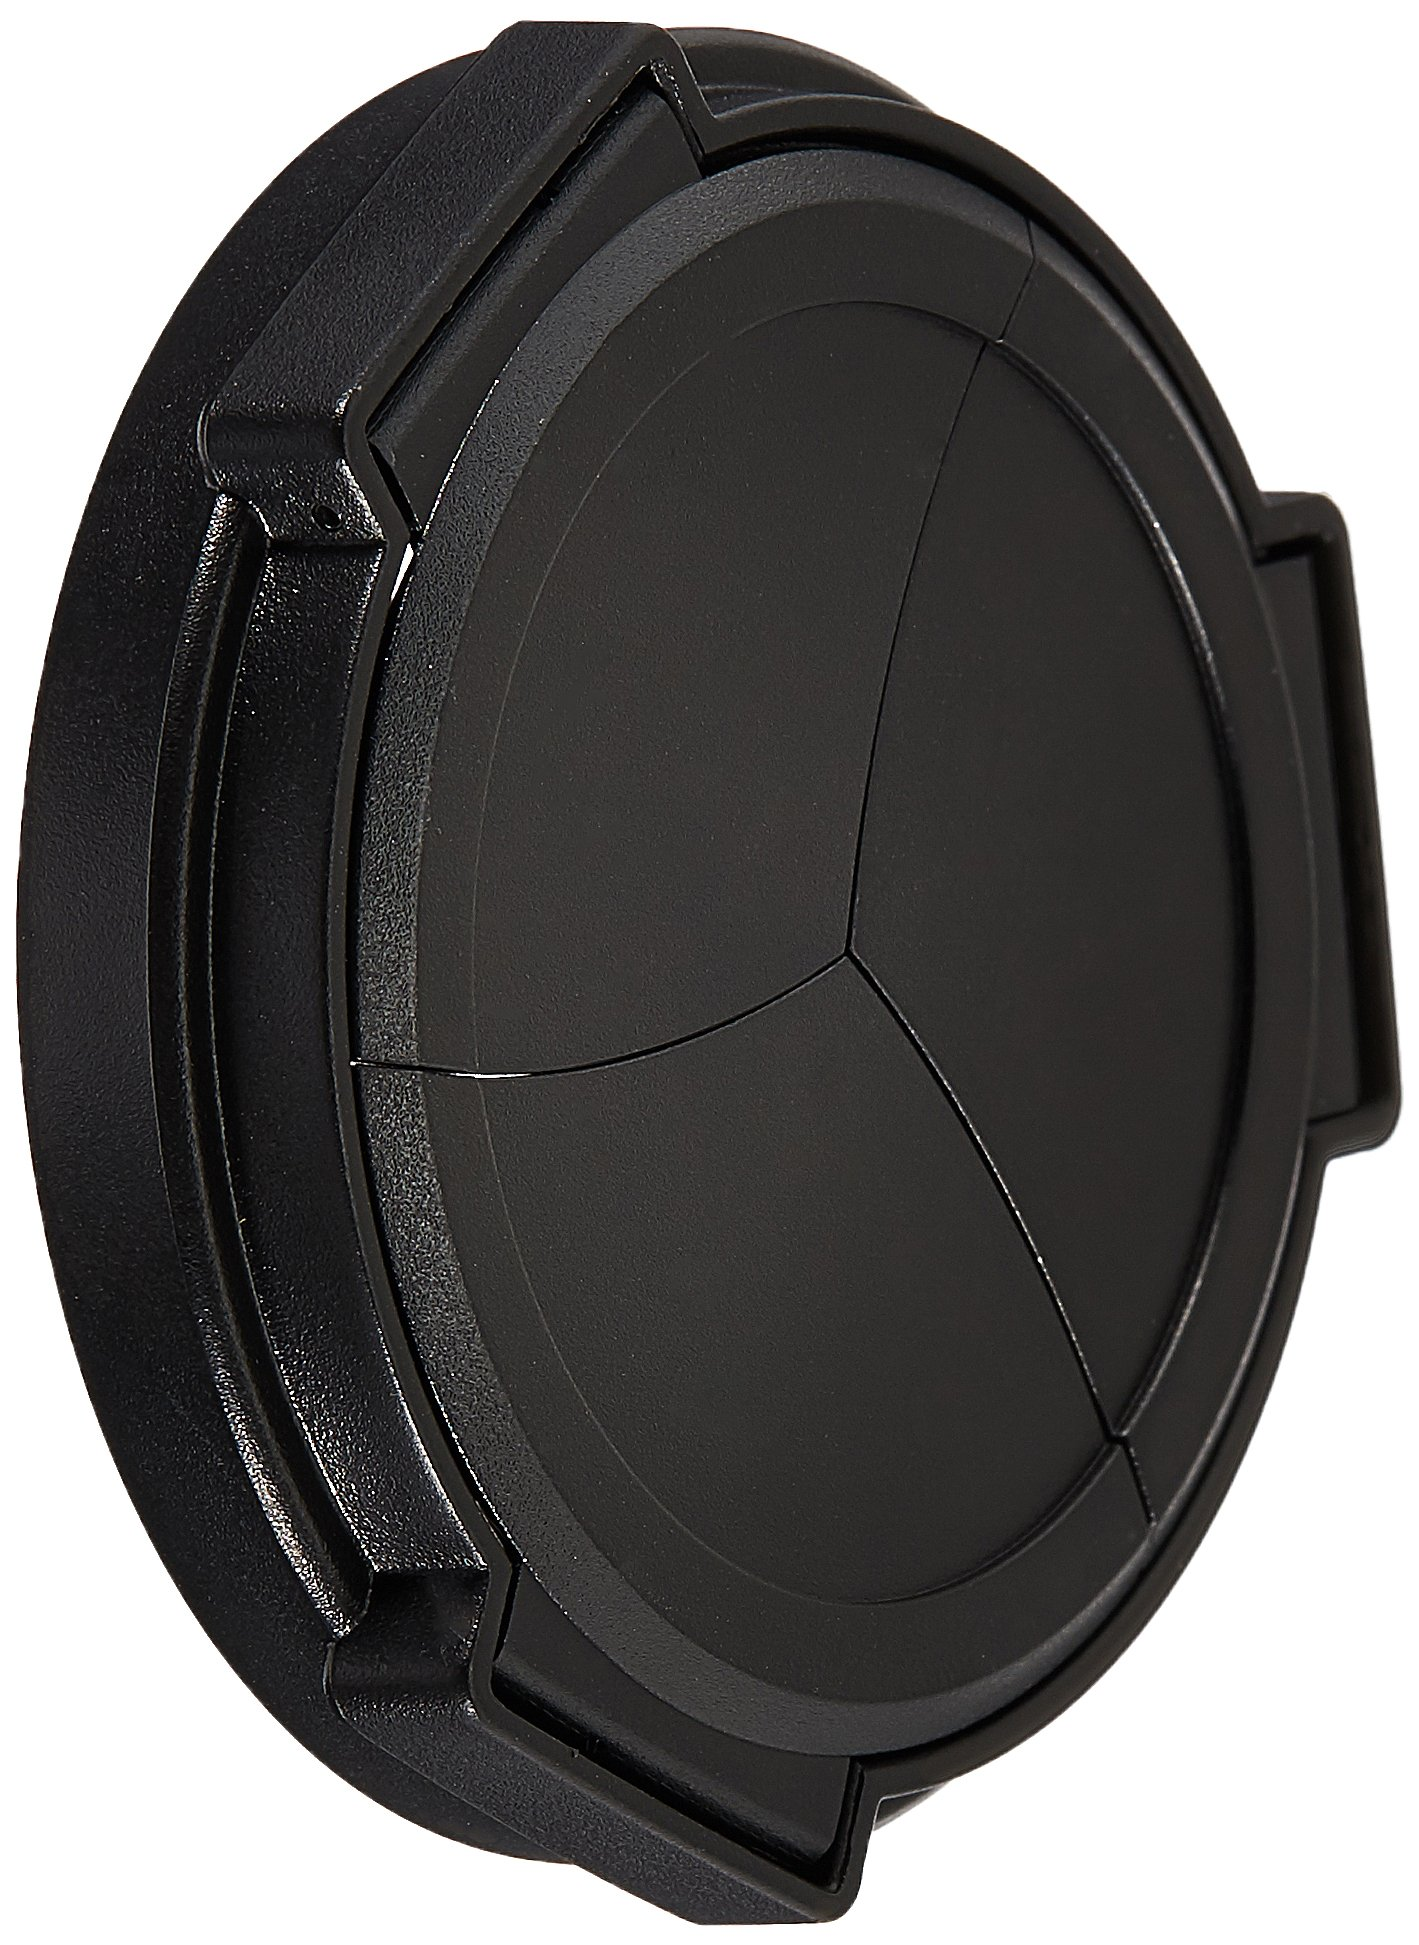 JJC ALC-LX100 Auto Open and Close Lens Cap For Panasonic LUMIX DMC-LX100 LEICA D-LUX(Typ 109) Camera (Black) by JJC